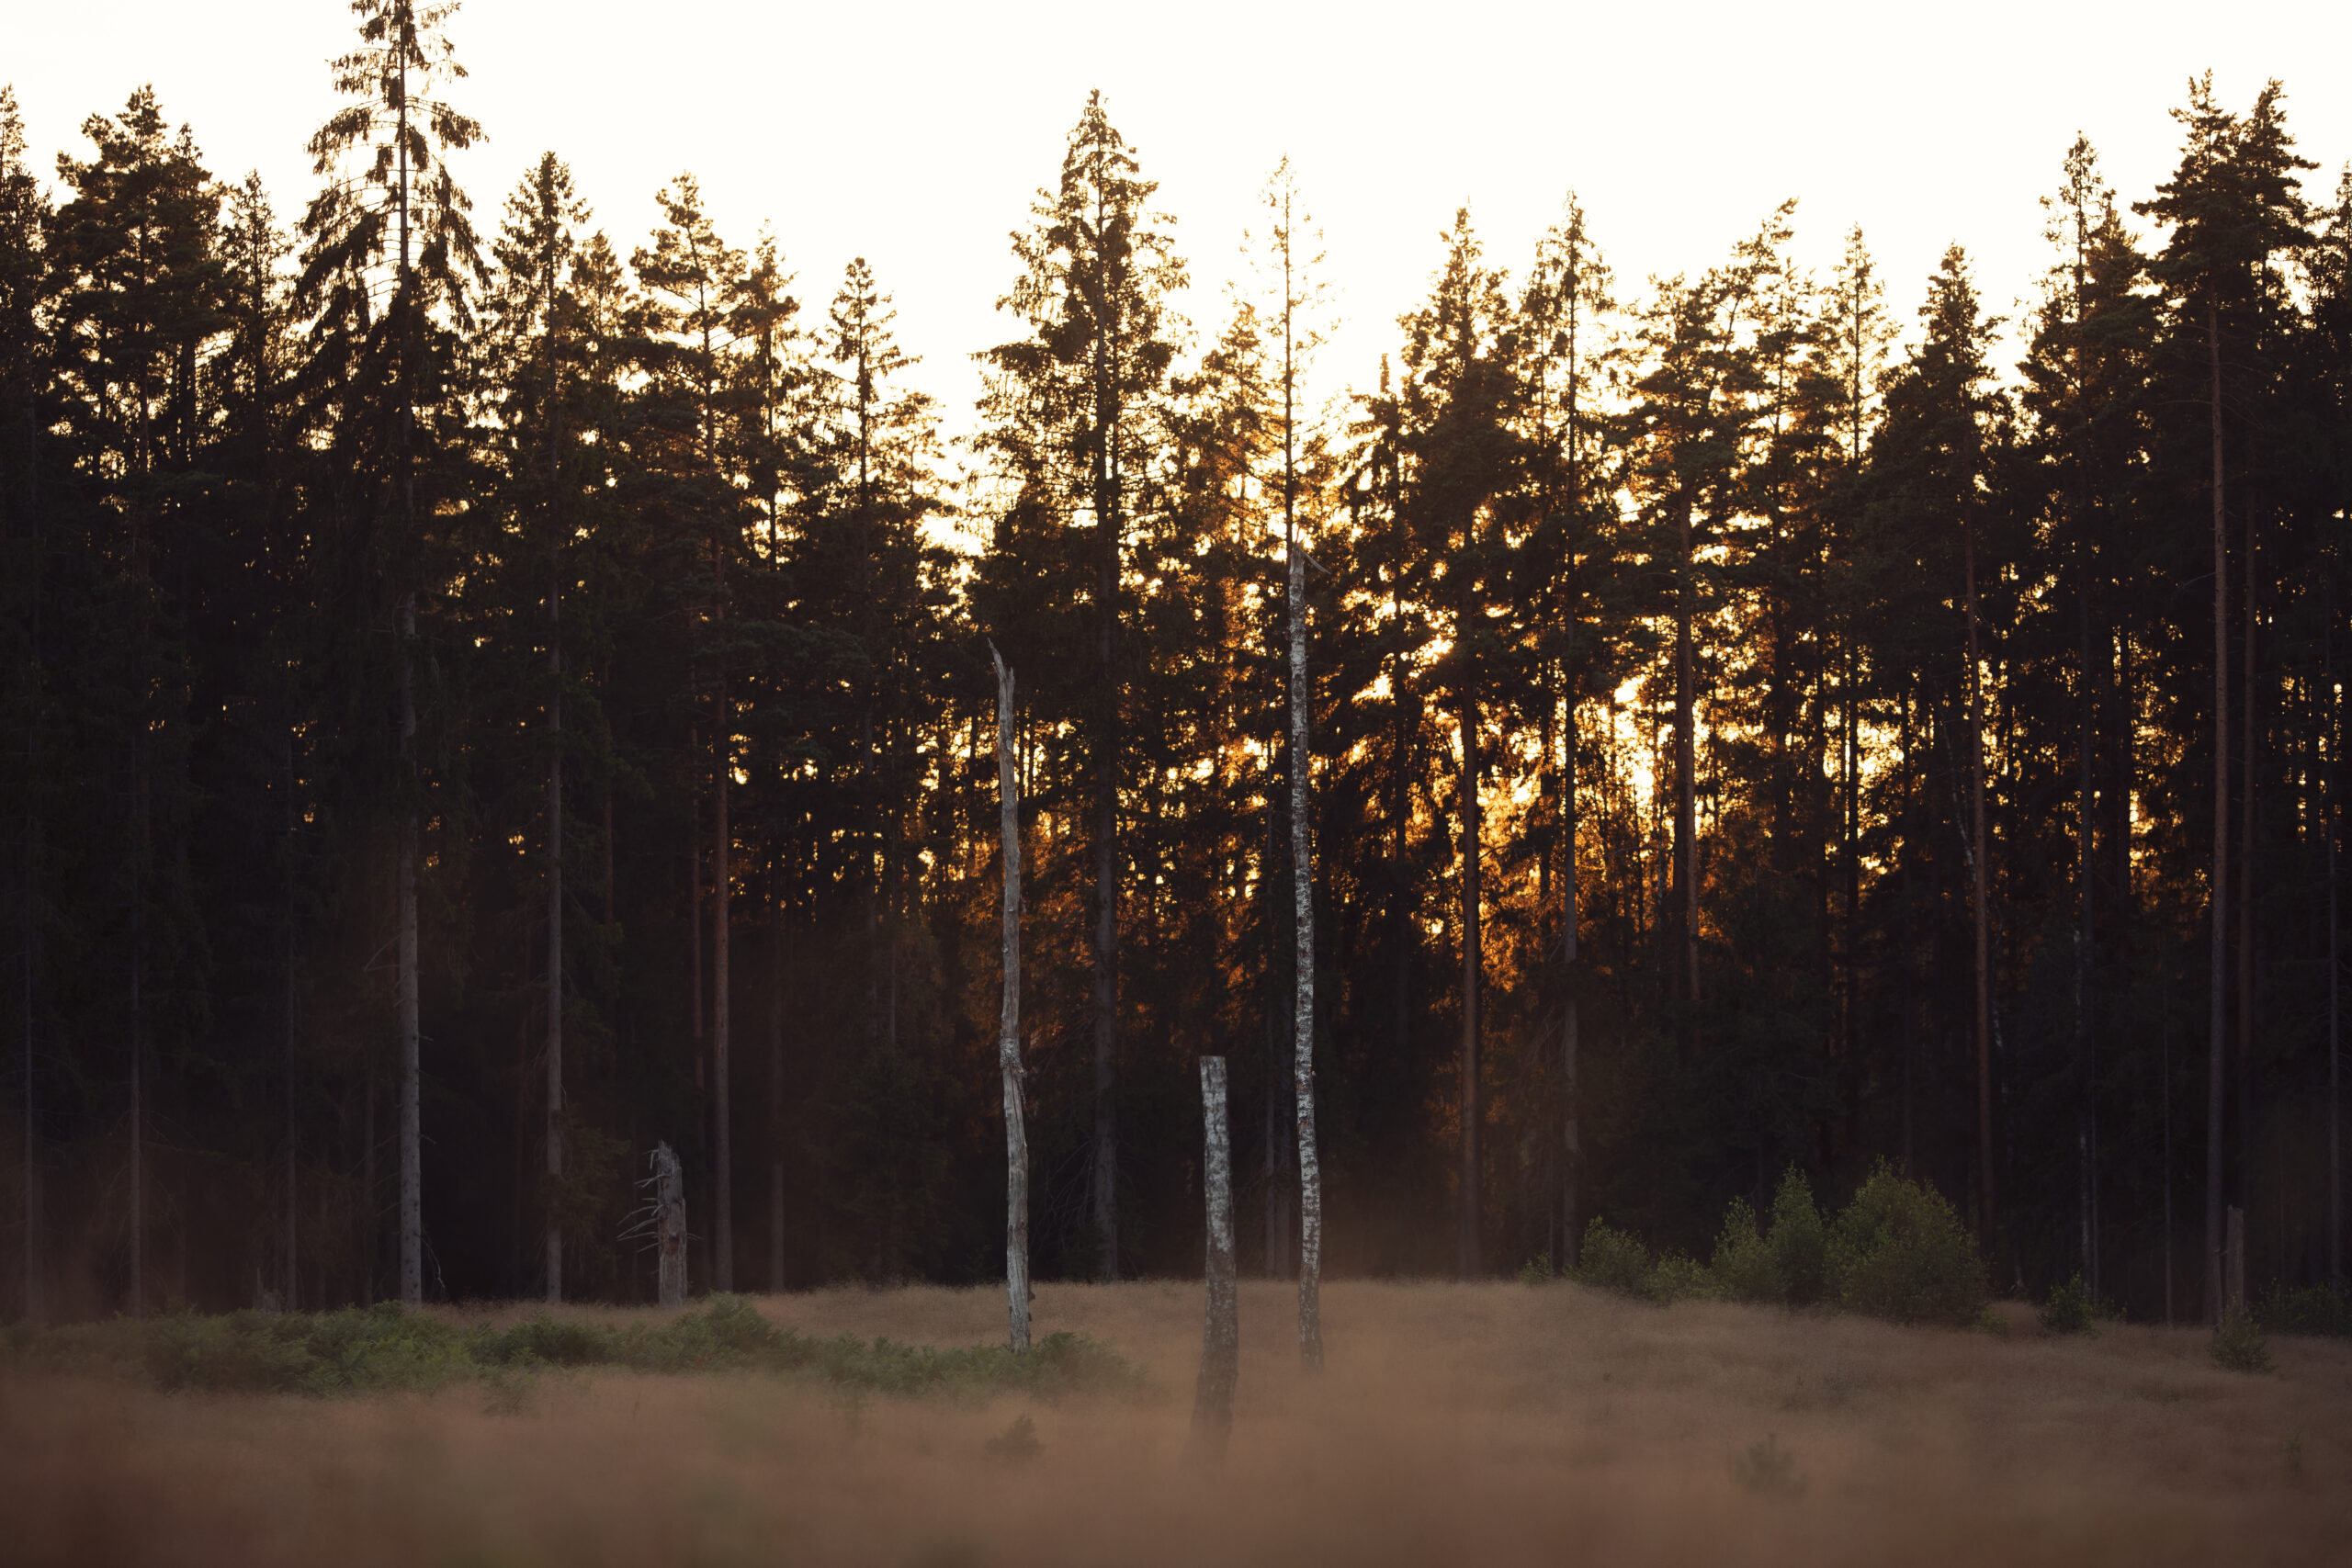 sun setting behind forest trees